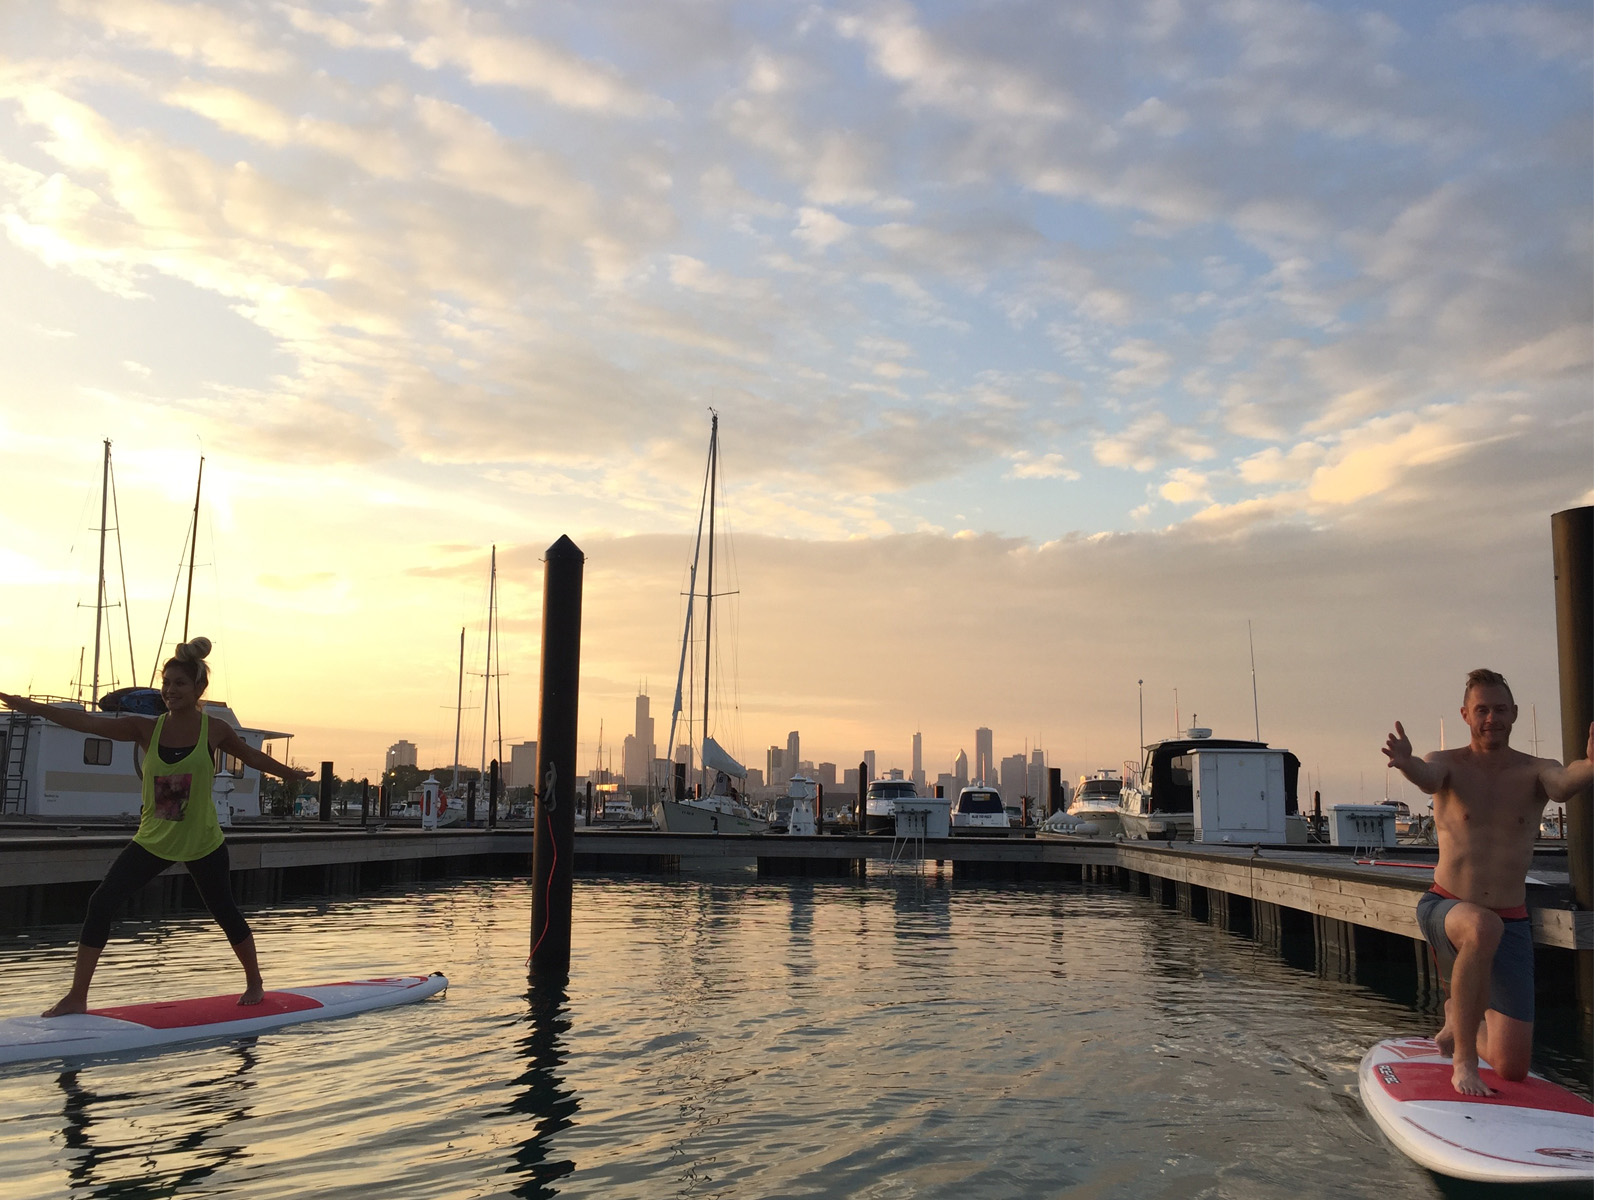 Sunset SUP Yoga- 31st St Harbor